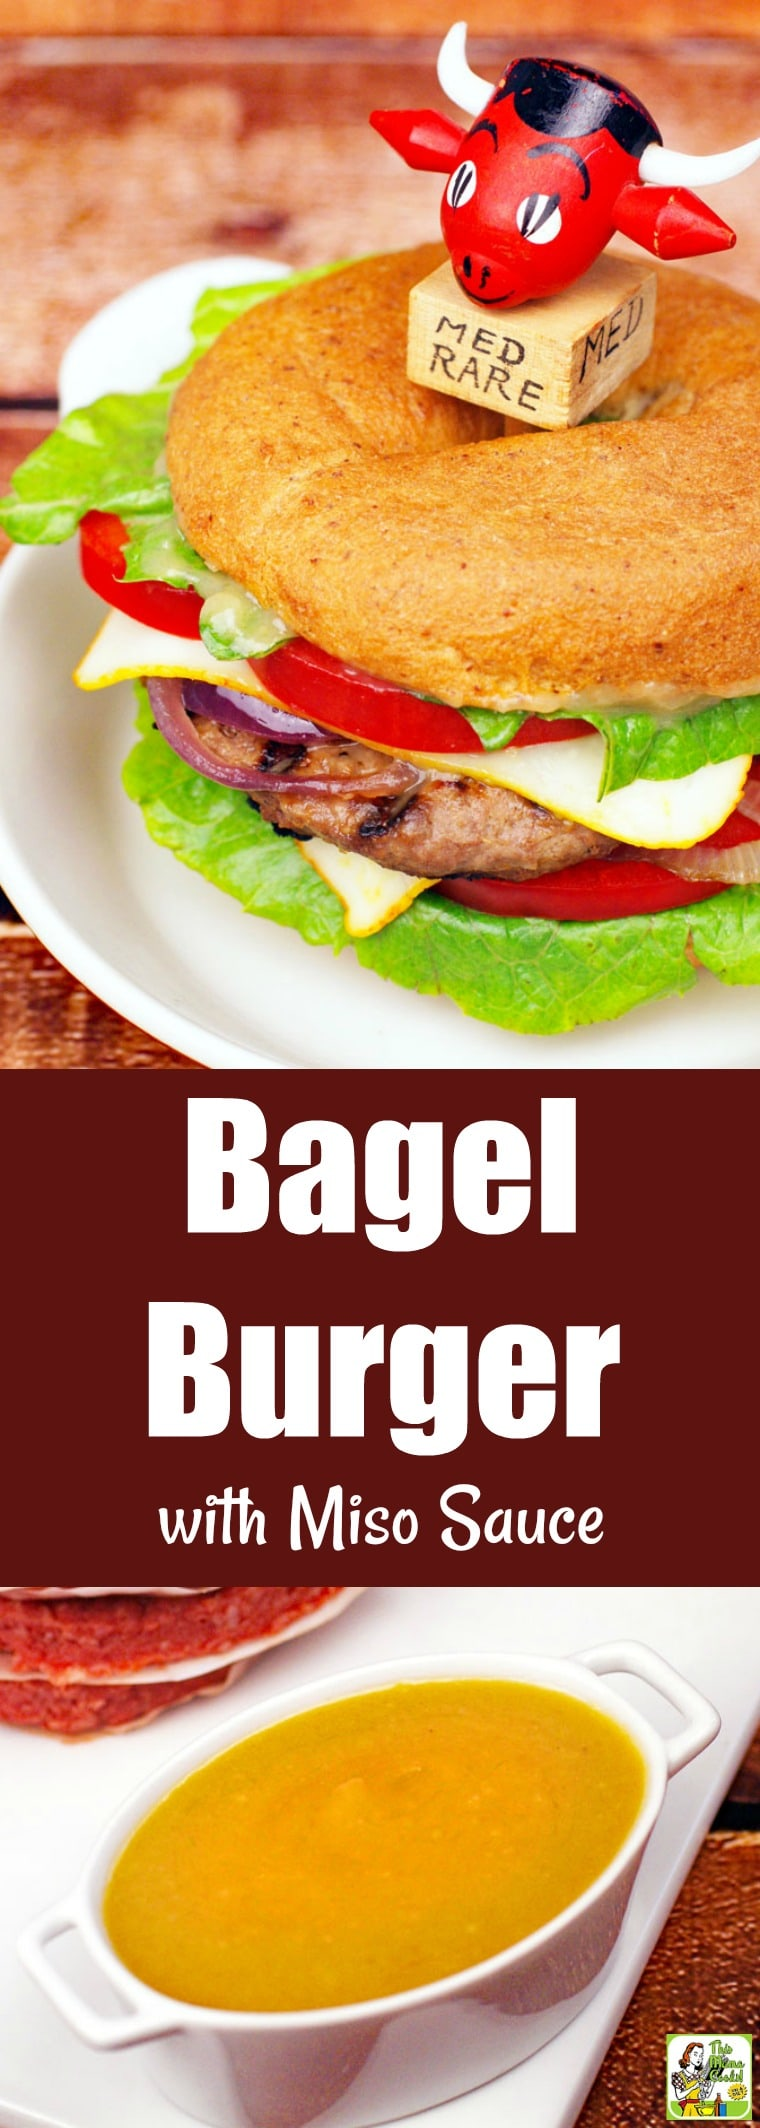 This Bagel Burger with Miso Sauce is for anyone who loves grilling gourmet burgers at home. This gluten-free burger is slathered in miso sauce and served on a gluten-free bagel. #recipes #easy #recipeoftheday #glutenfree #easyrecipe #easyrecipes #glutenfreerecipes #grill #grilling #grillrecipes #grillingrecipes #burger #hamburger #miso